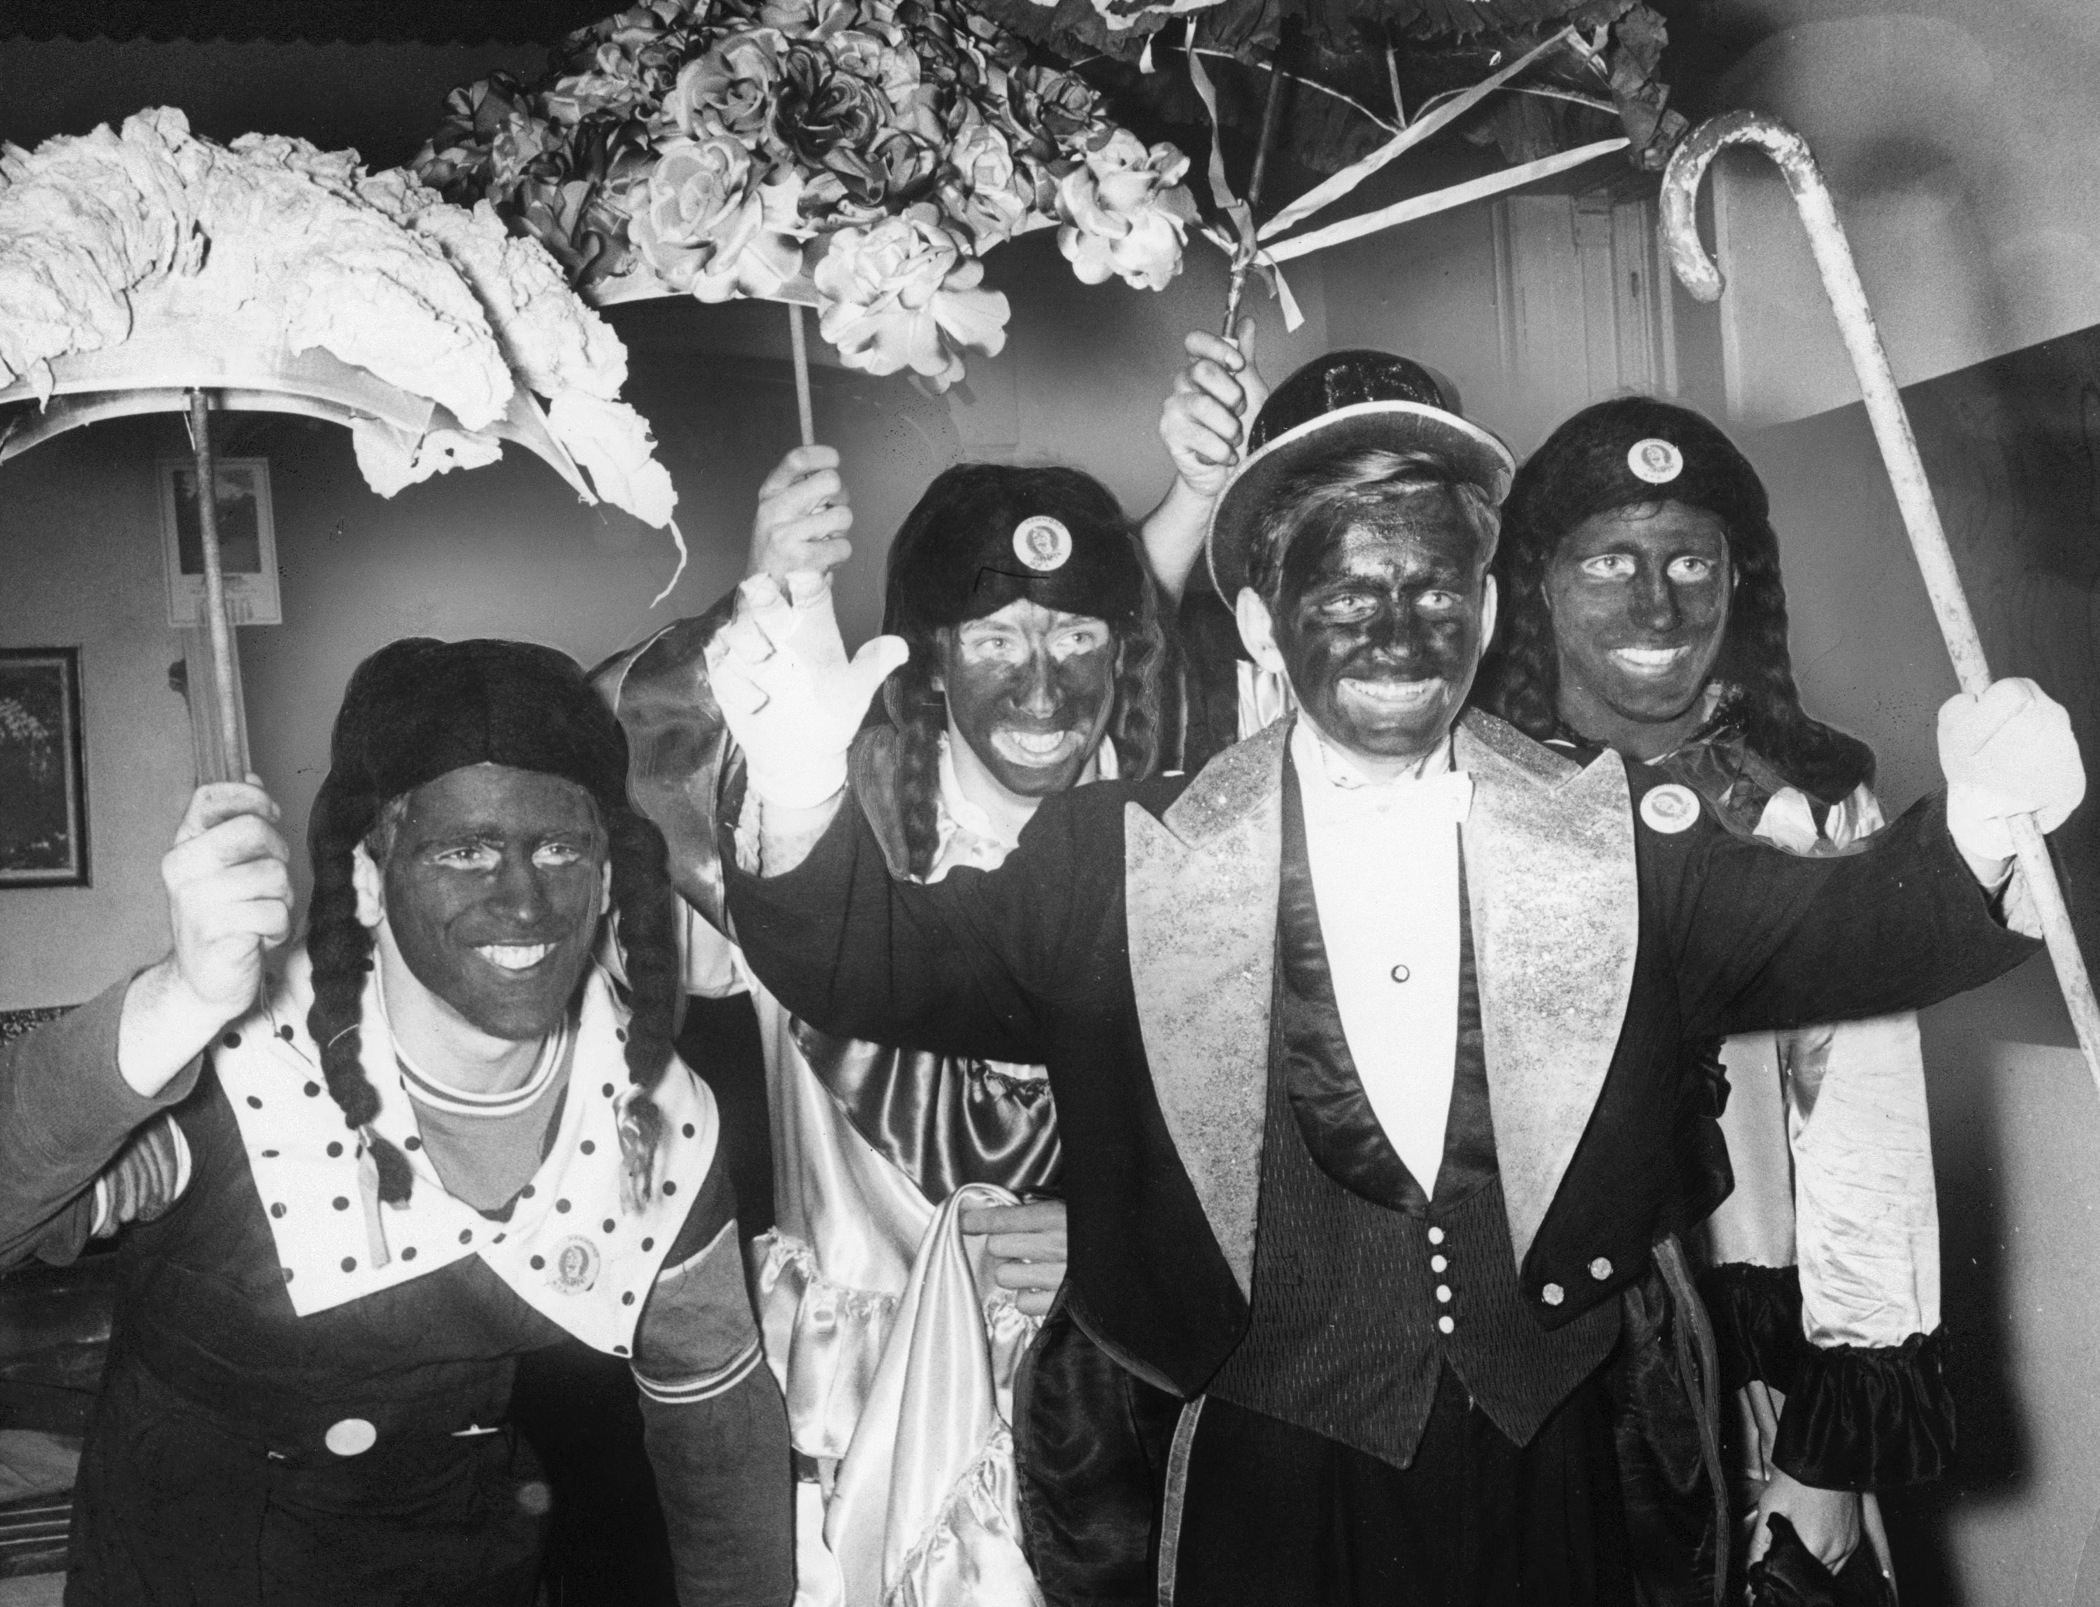 Washing Off Blackface Why A Racist Practice Persists Whyy